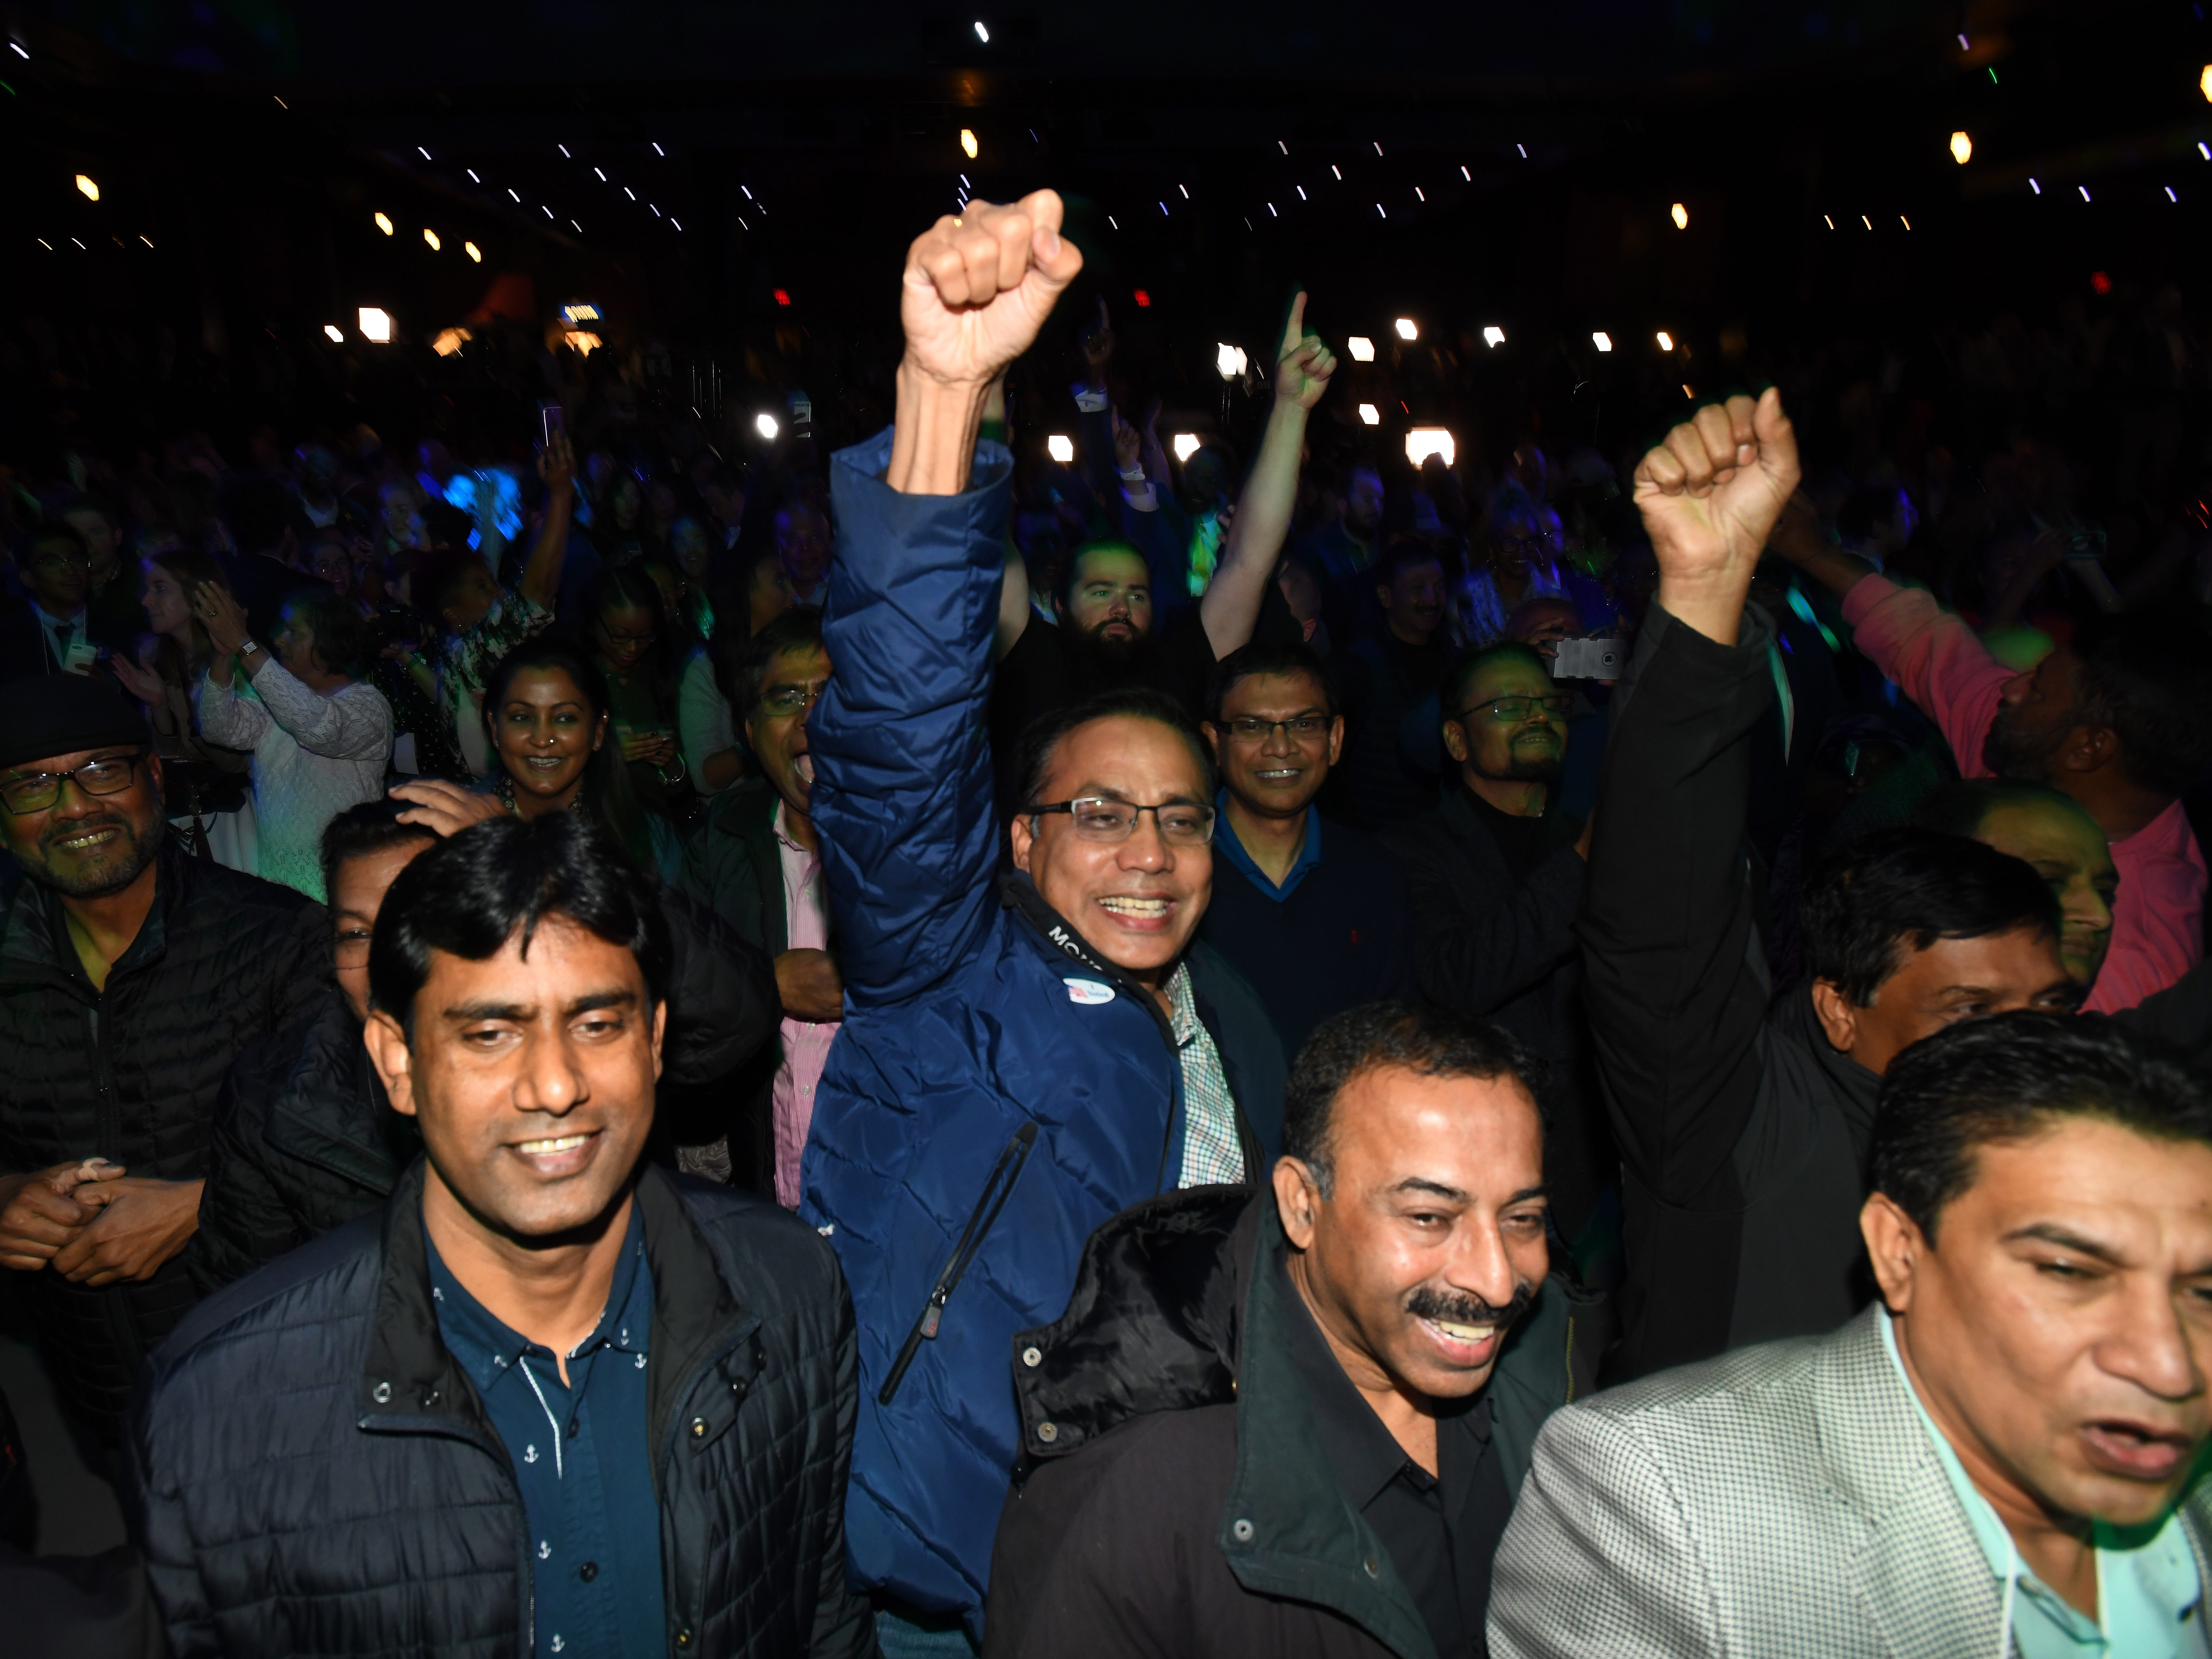 Democrats cheer as the results come in Tuesday night at their party at the Sound Board theater in the MotorCity Casino in Detroit.